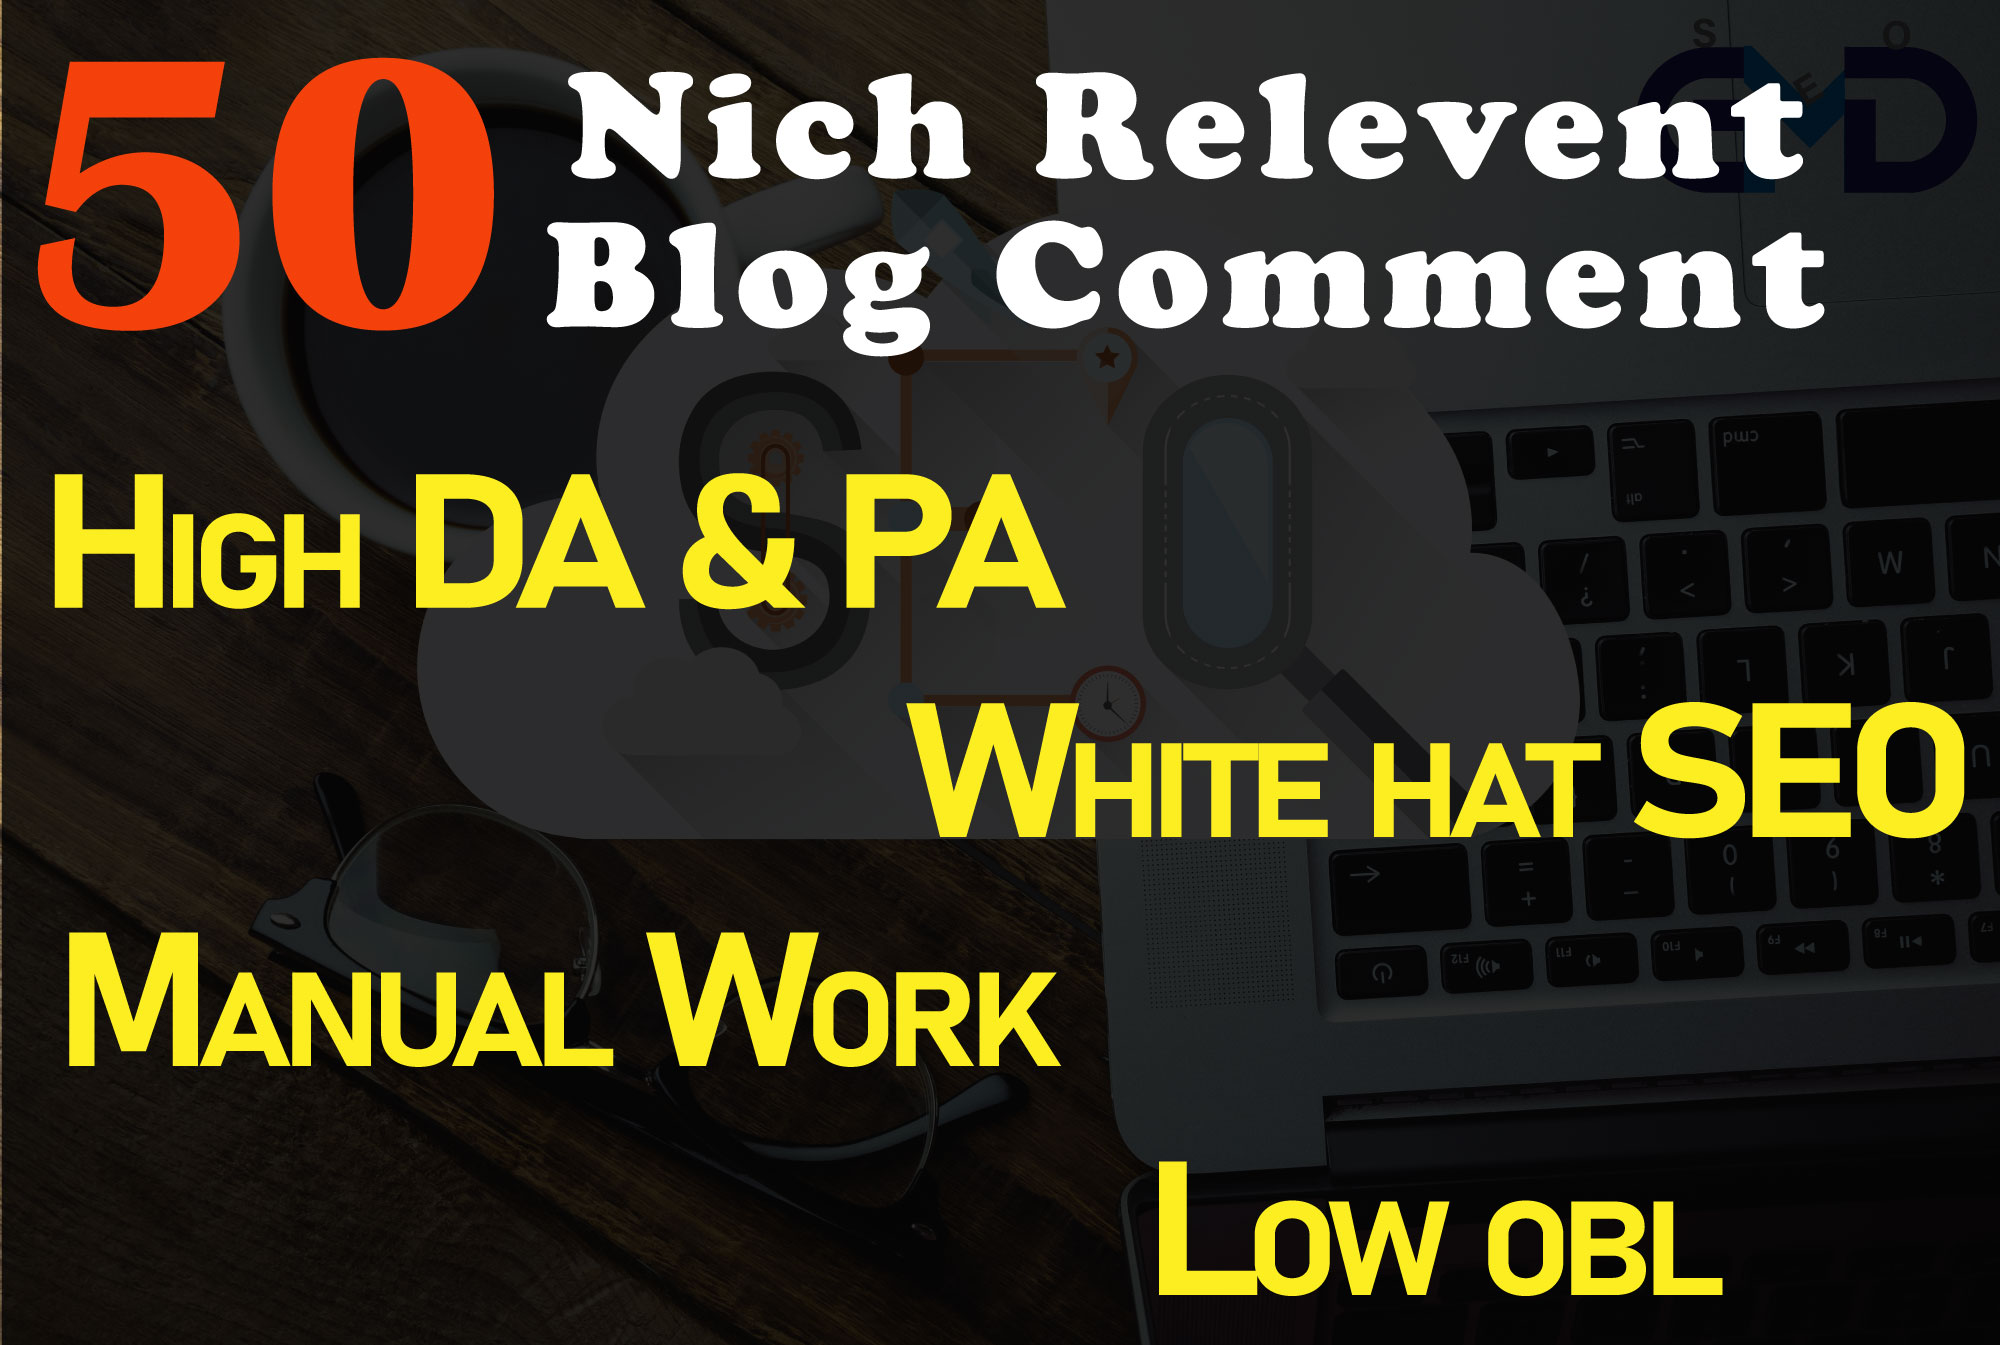 I will create 50 high quality relevant blog comment seo